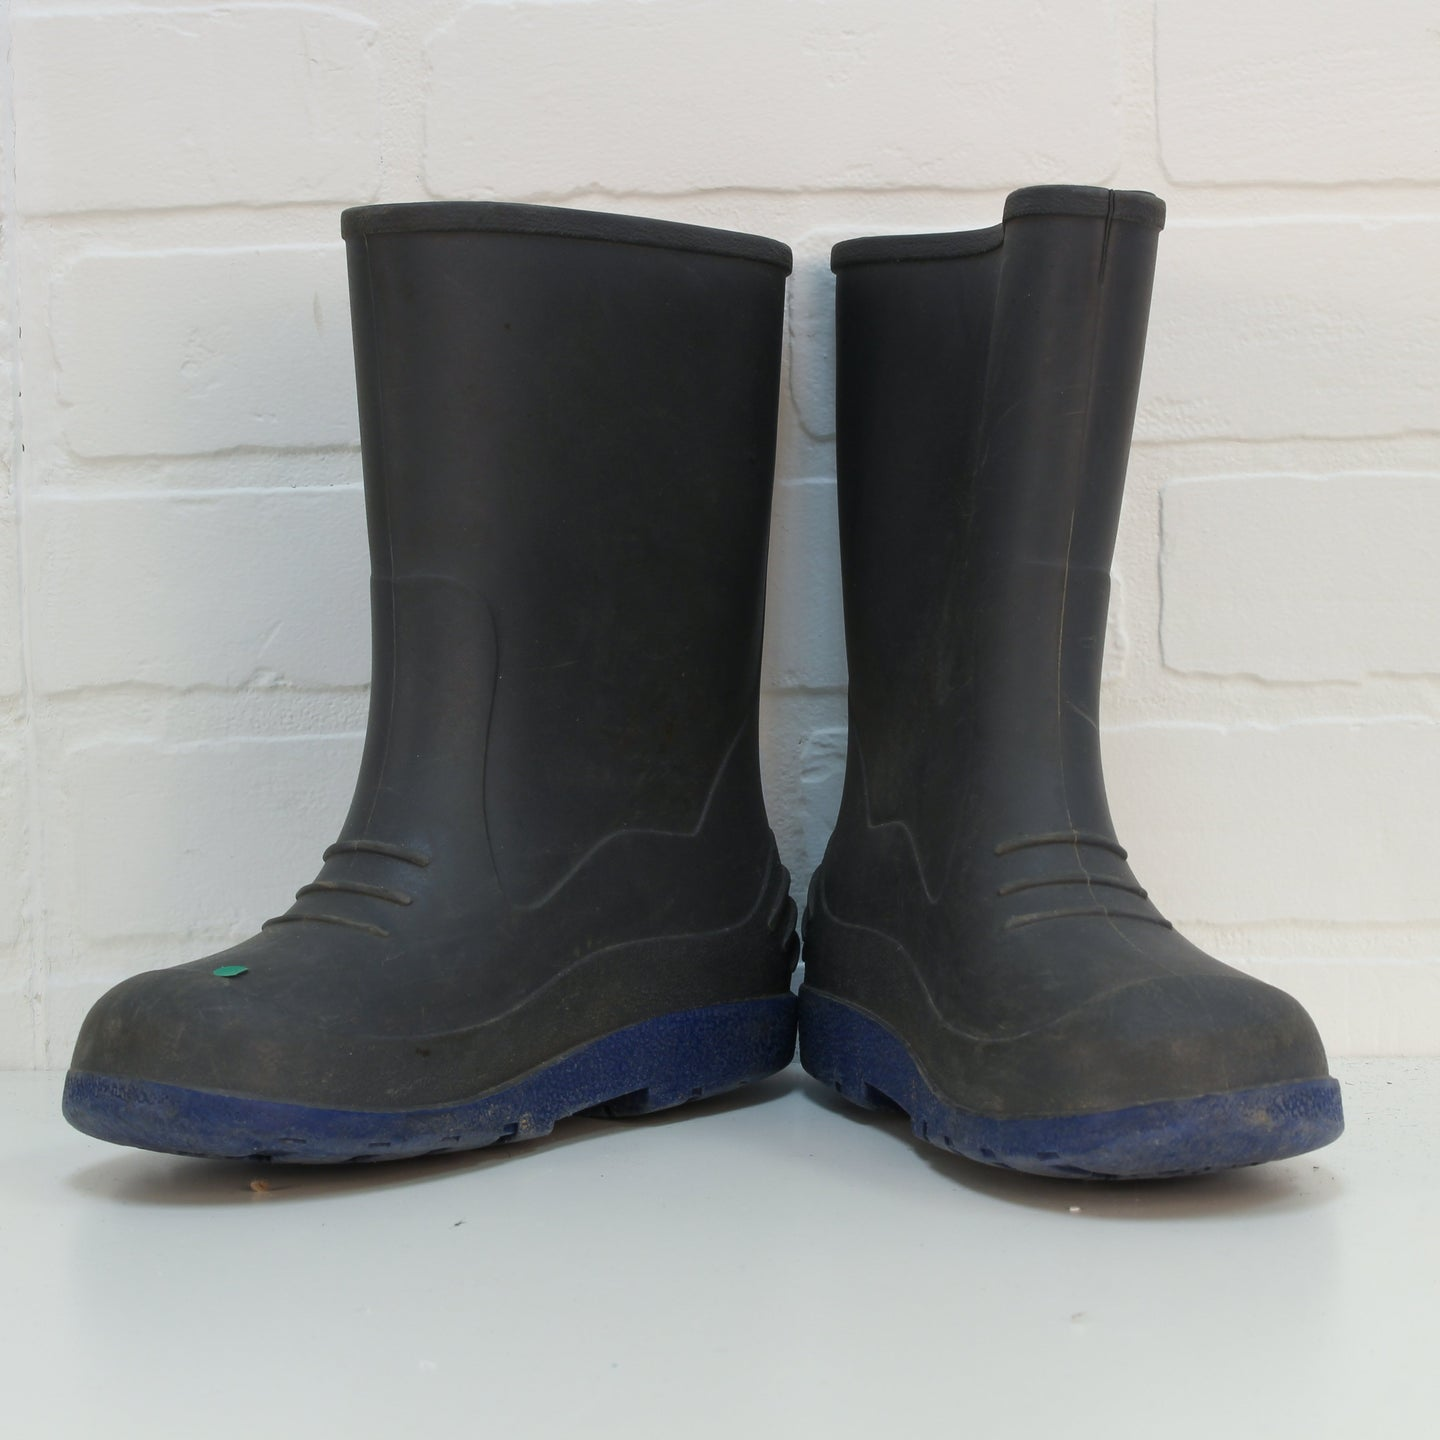 Grey + Blue Rain Boots (Big Kids Shoe Size 2)